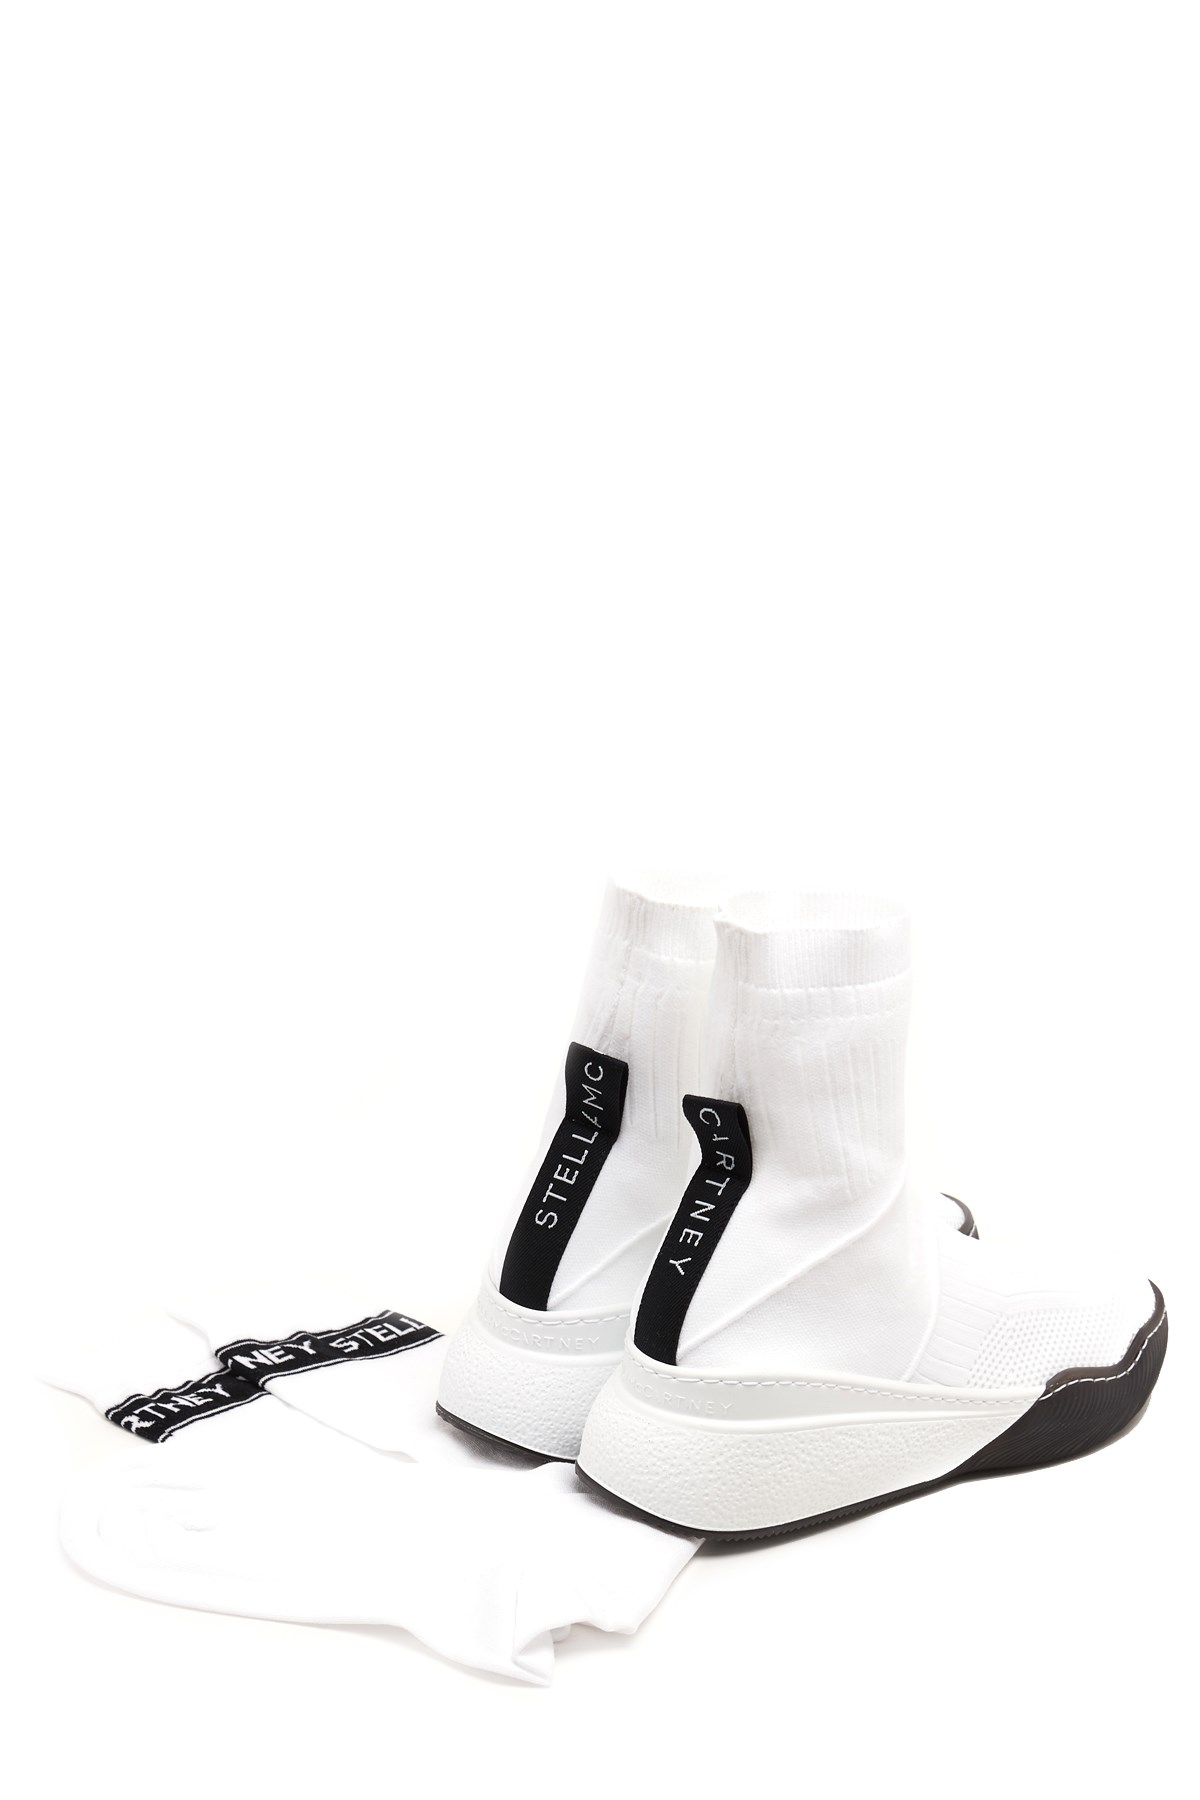 b863d3213694 stella mccartney  loop  sneakers available on julian-fashion.com - 57643